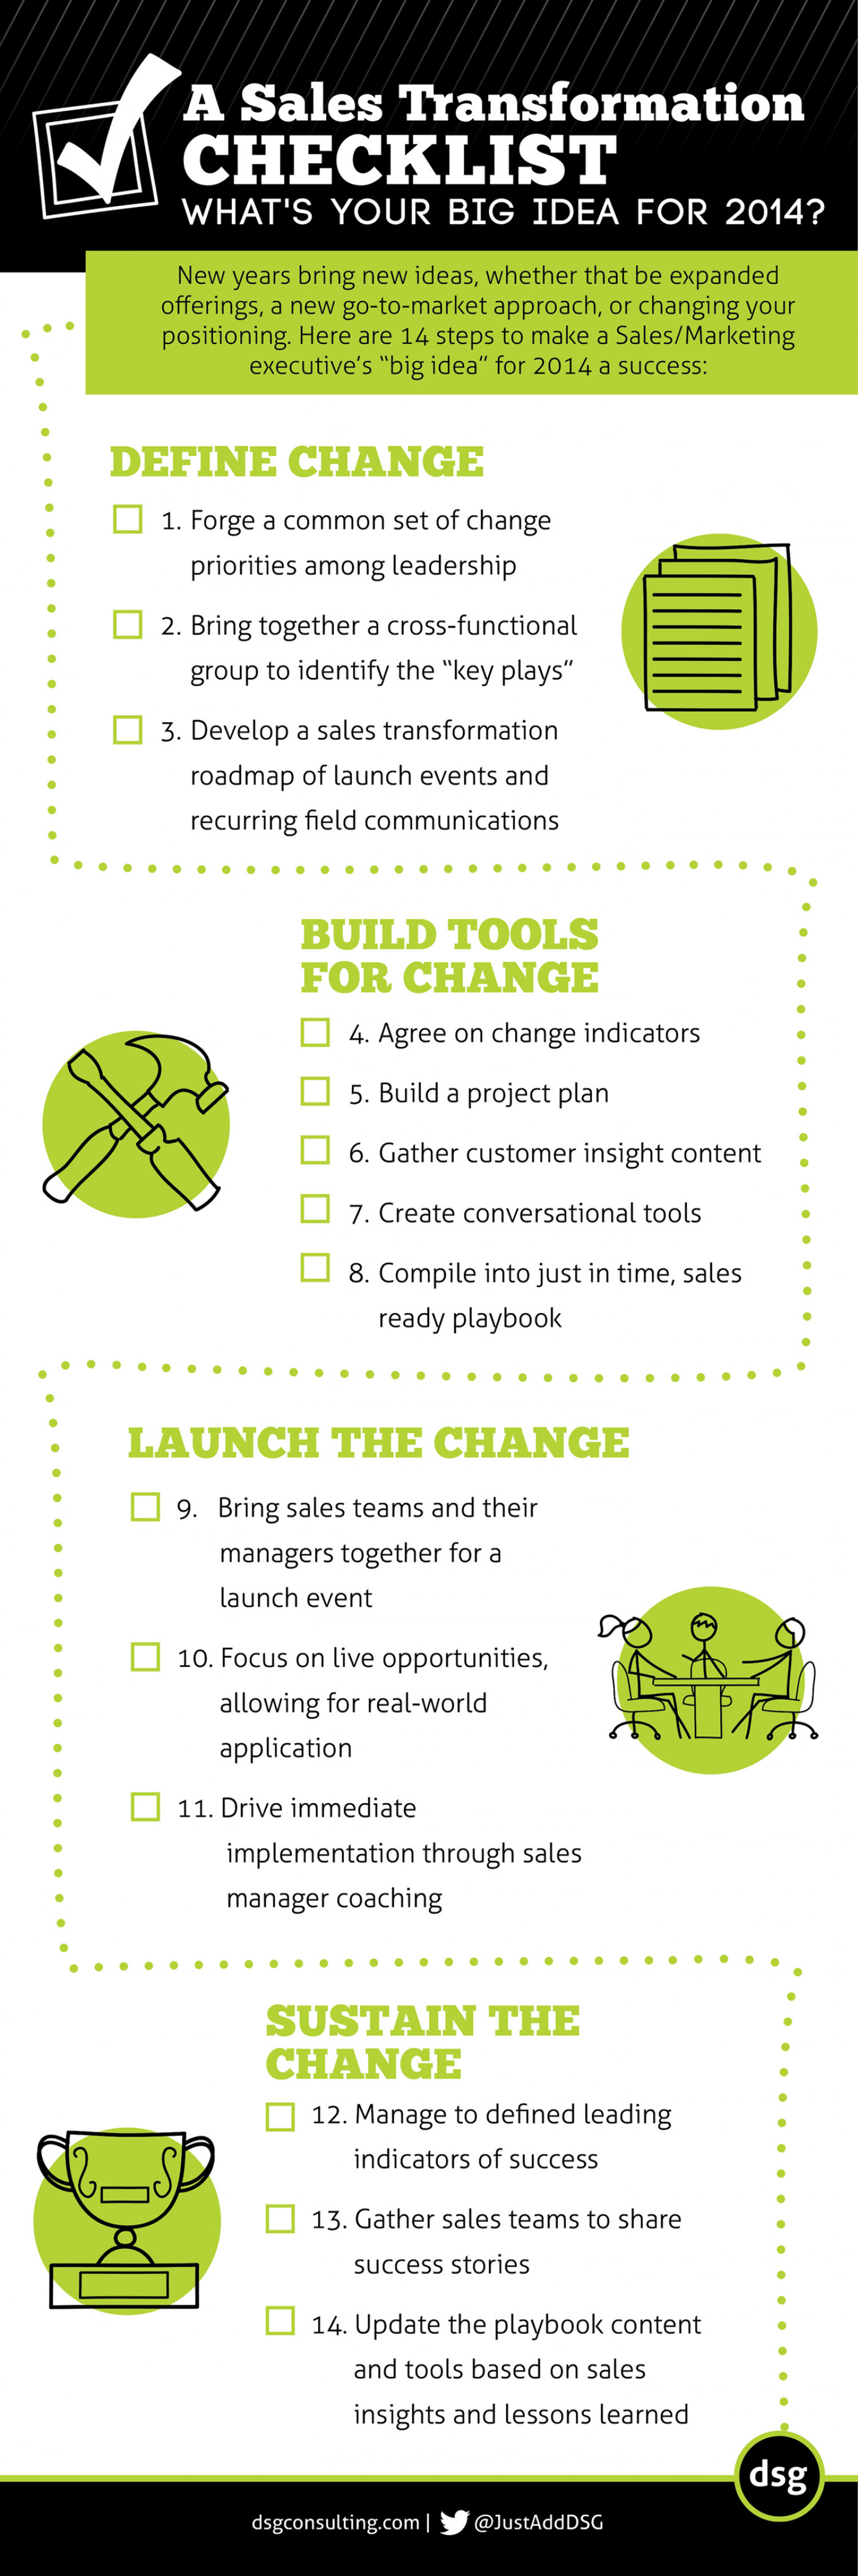 Sales Transformation Checklist Infographic